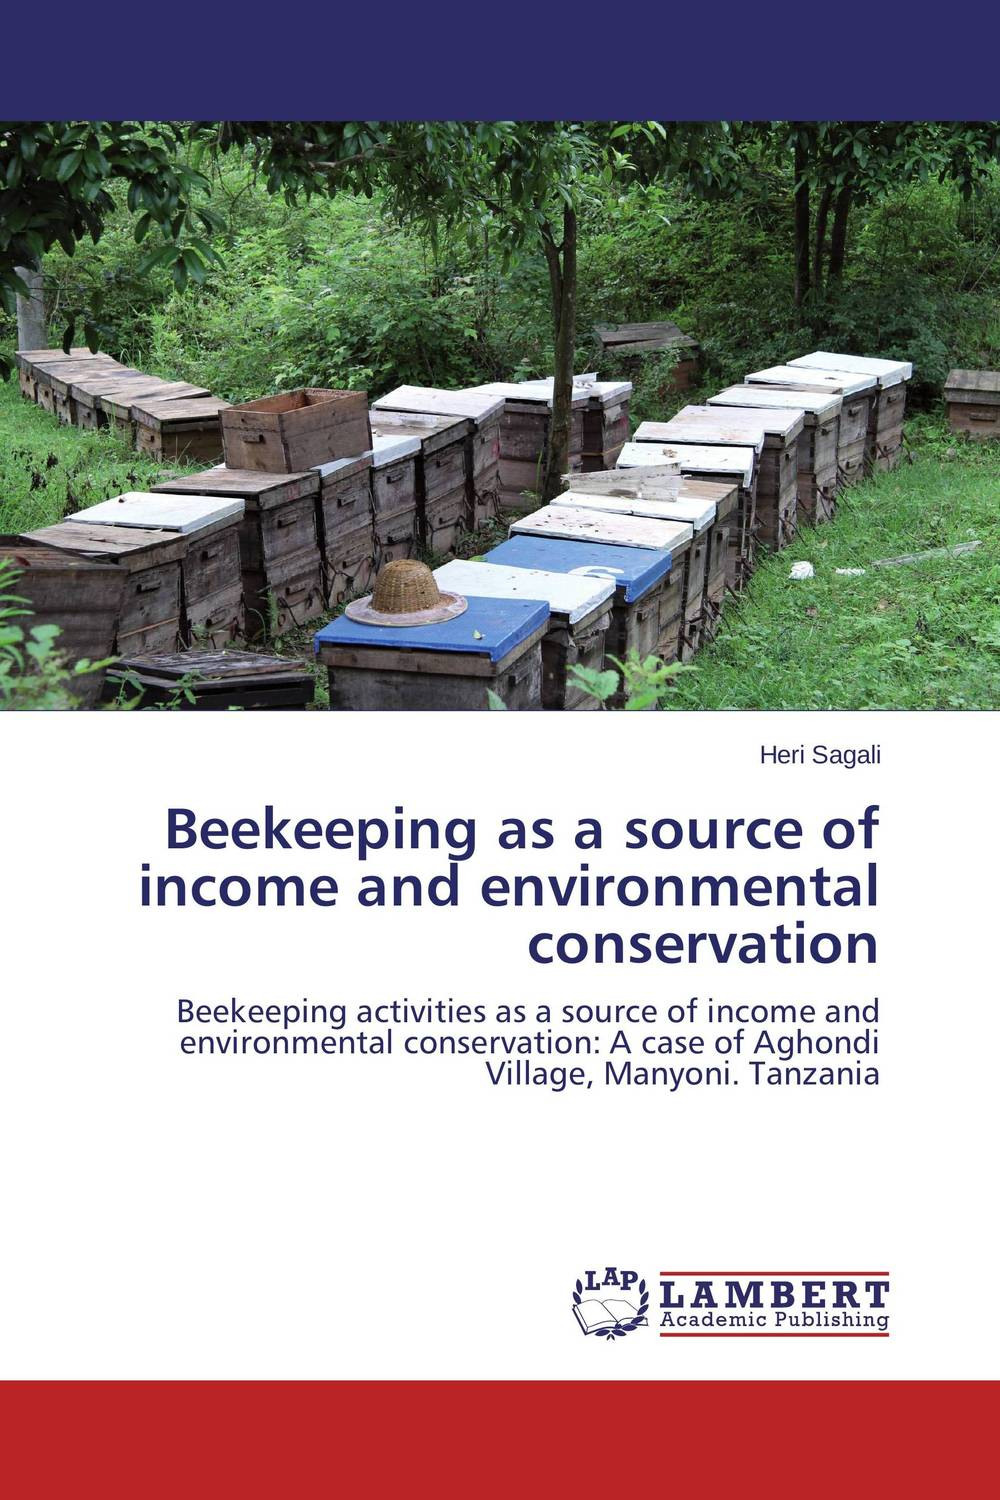 Beekeeping as a source of income and environmental conservation